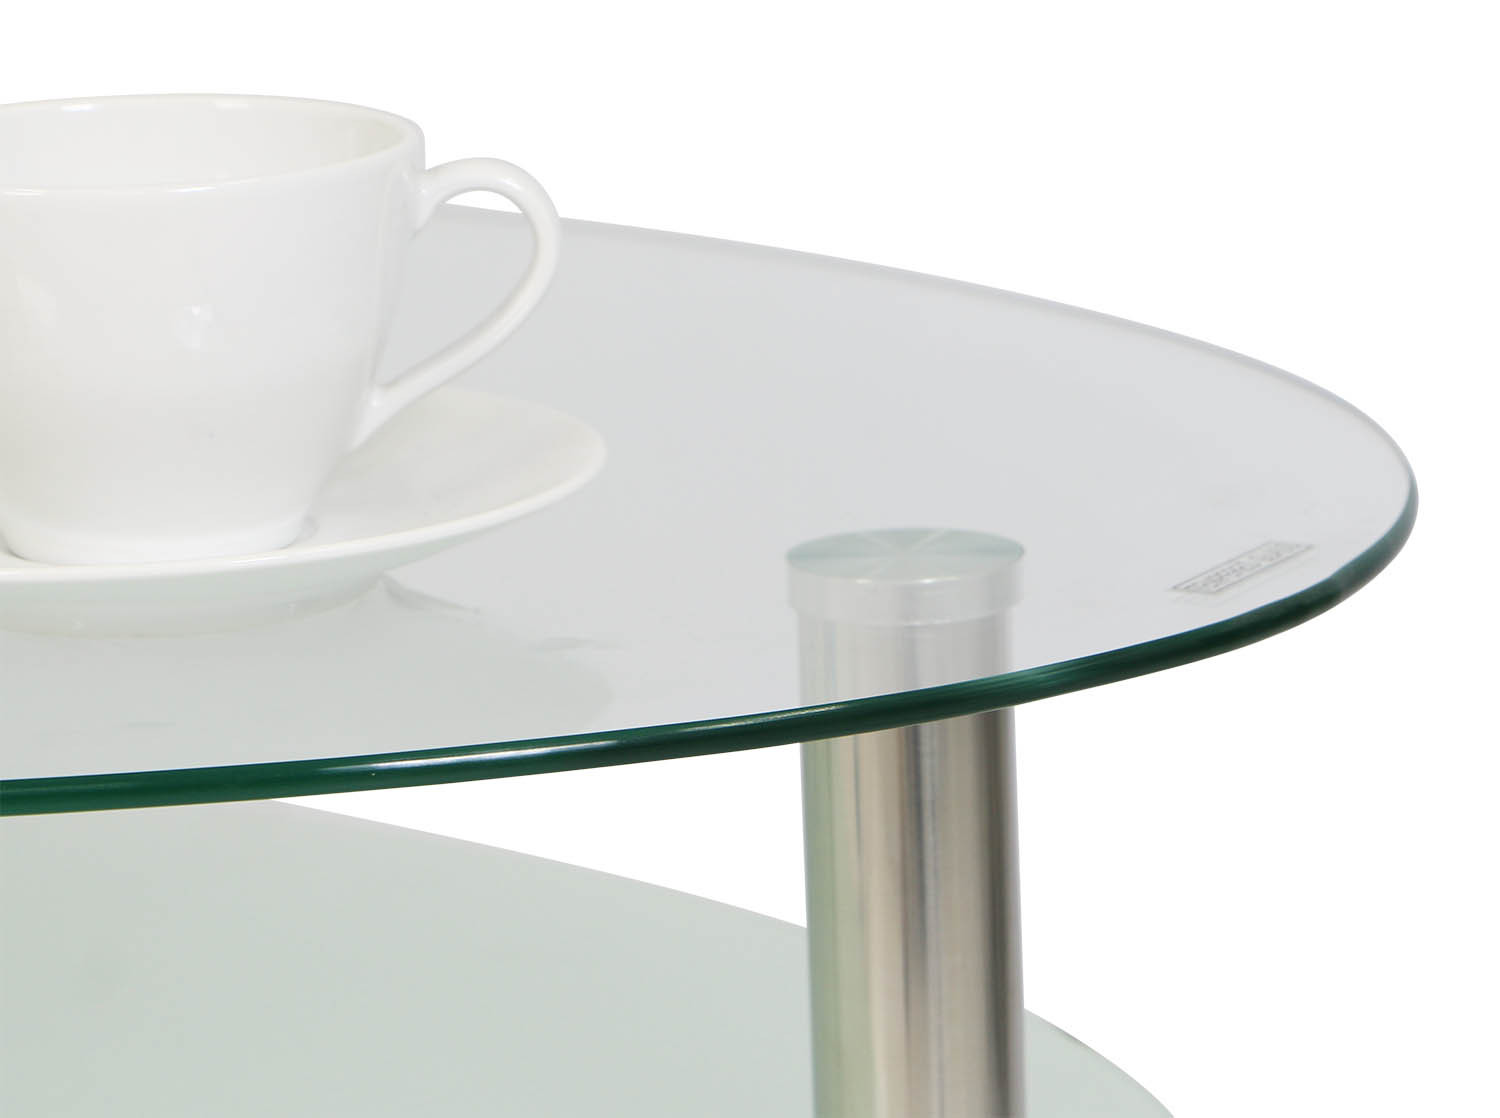 Krystal eclipse tempered glass coffee table furniture for Tempered glass coffee table